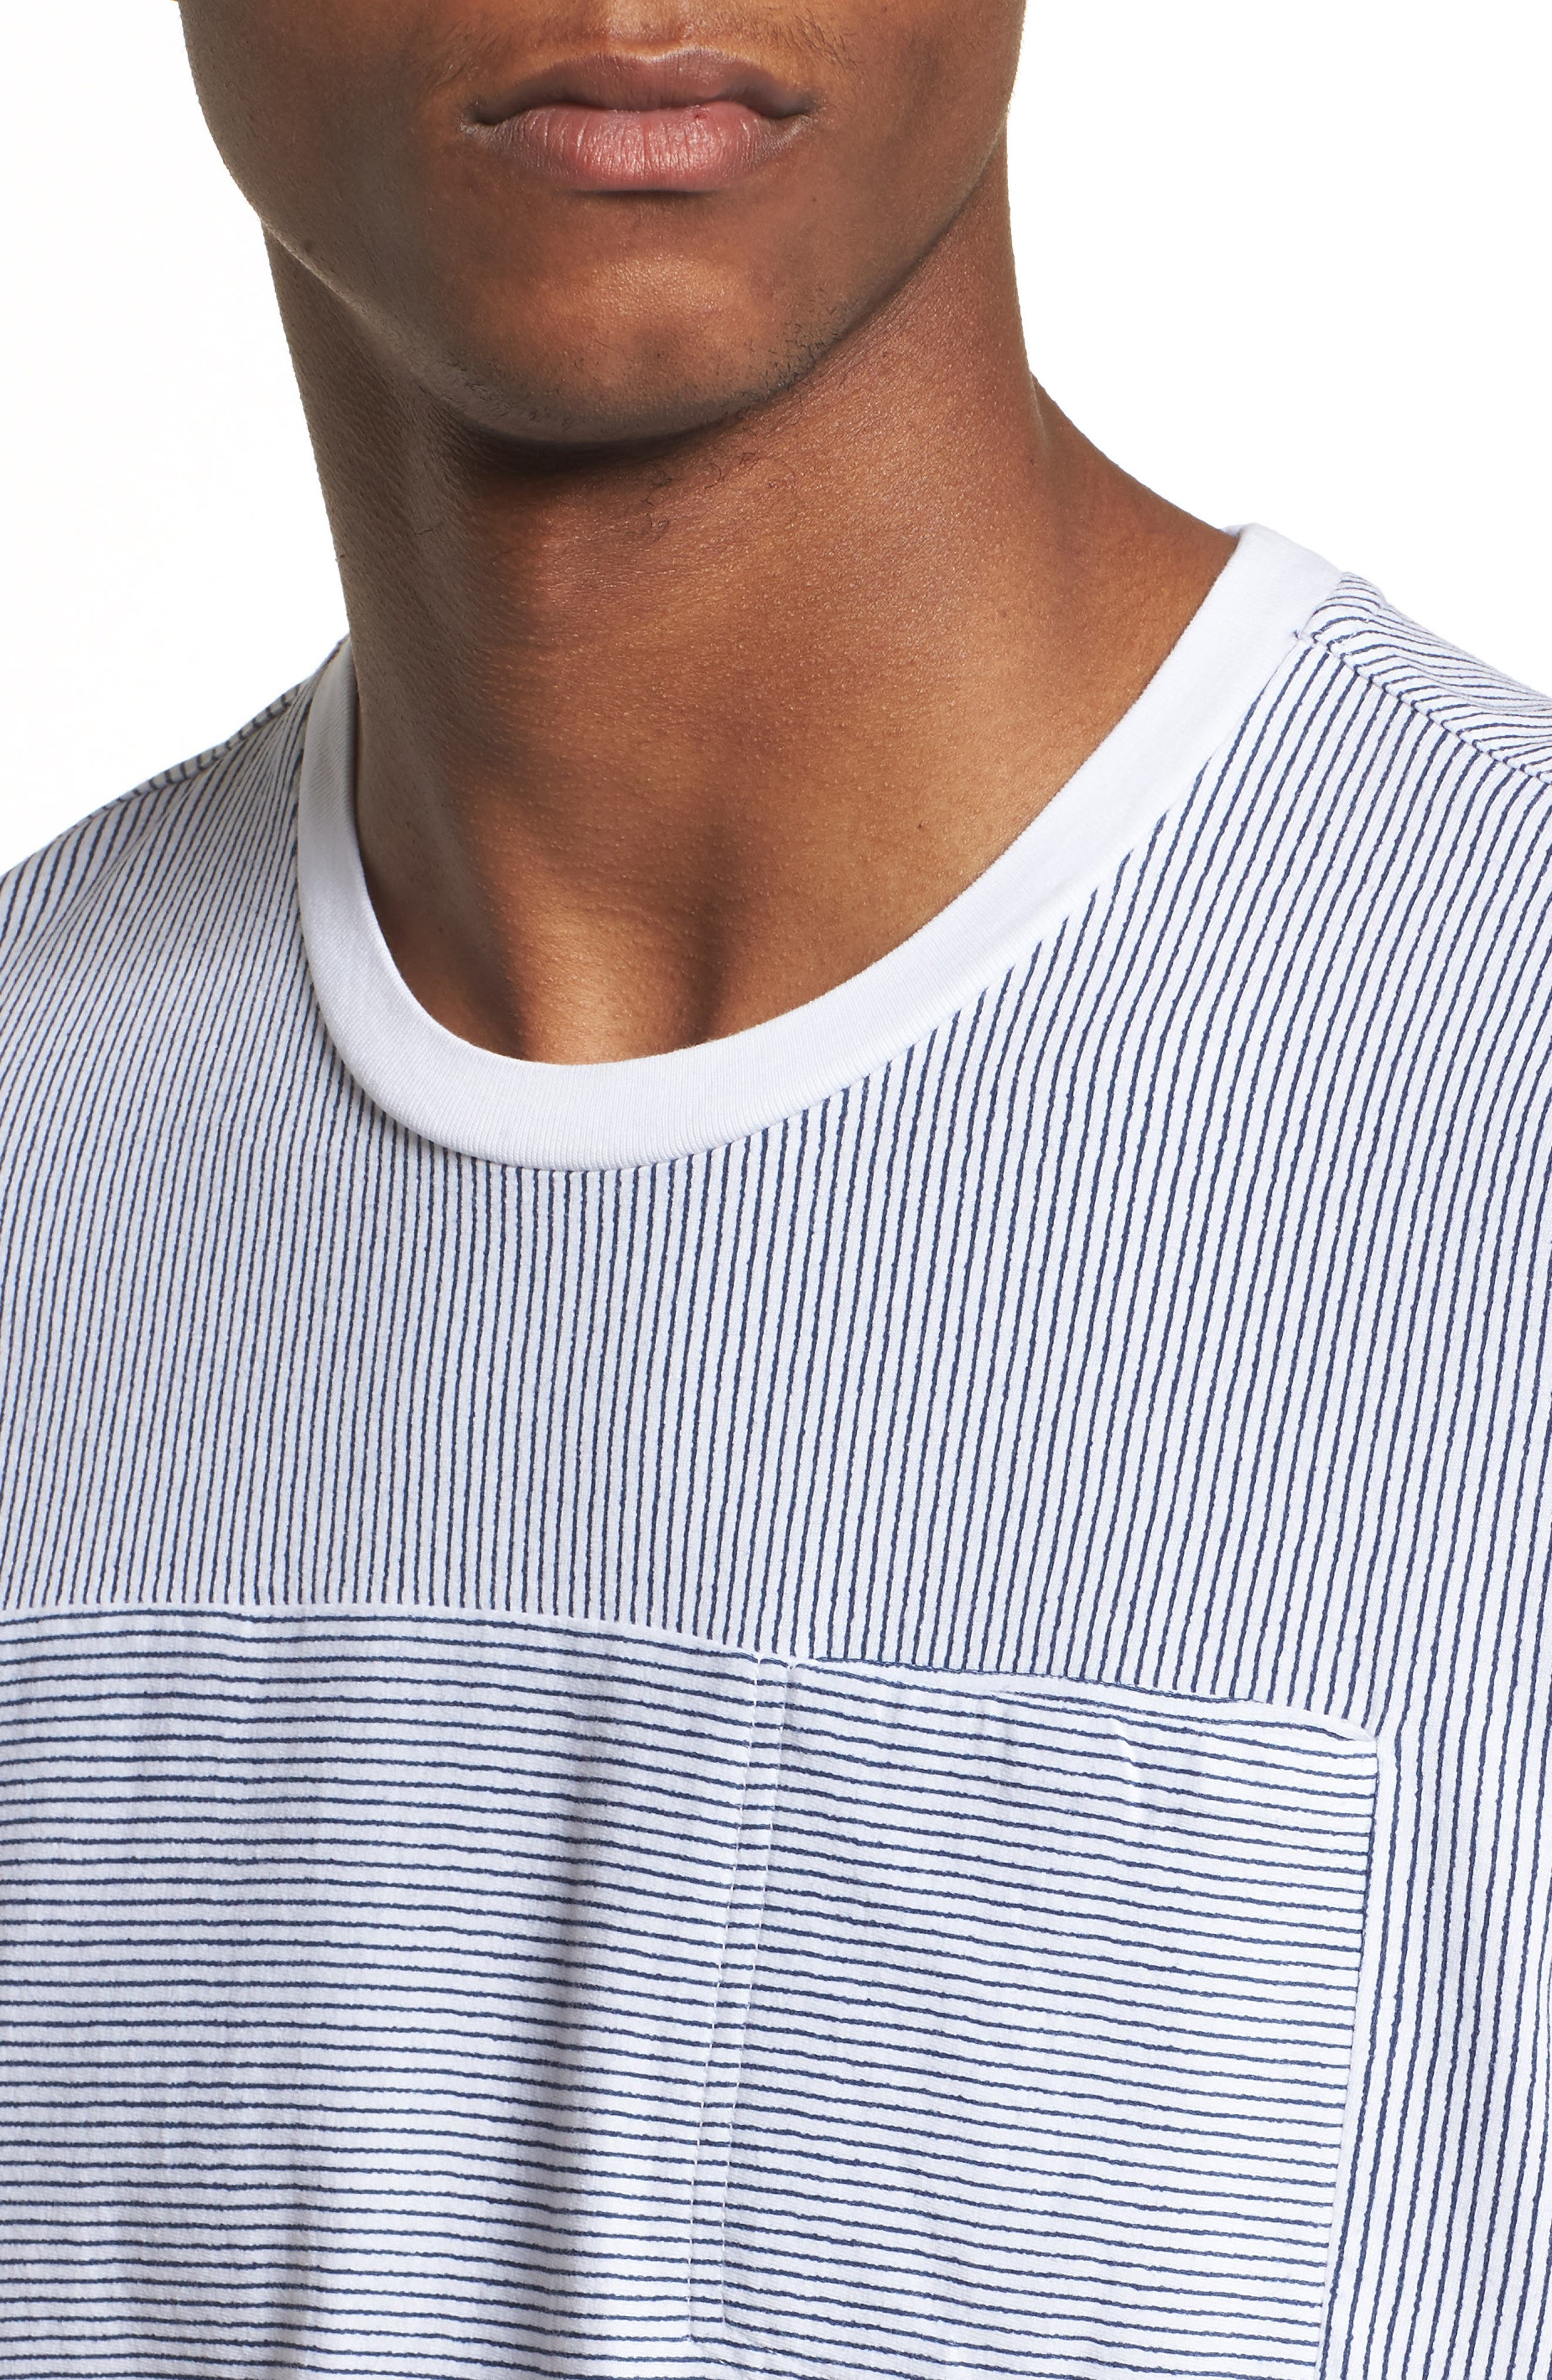 Pinstripe Pocket T-Shirt,                             Alternate thumbnail 4, color,